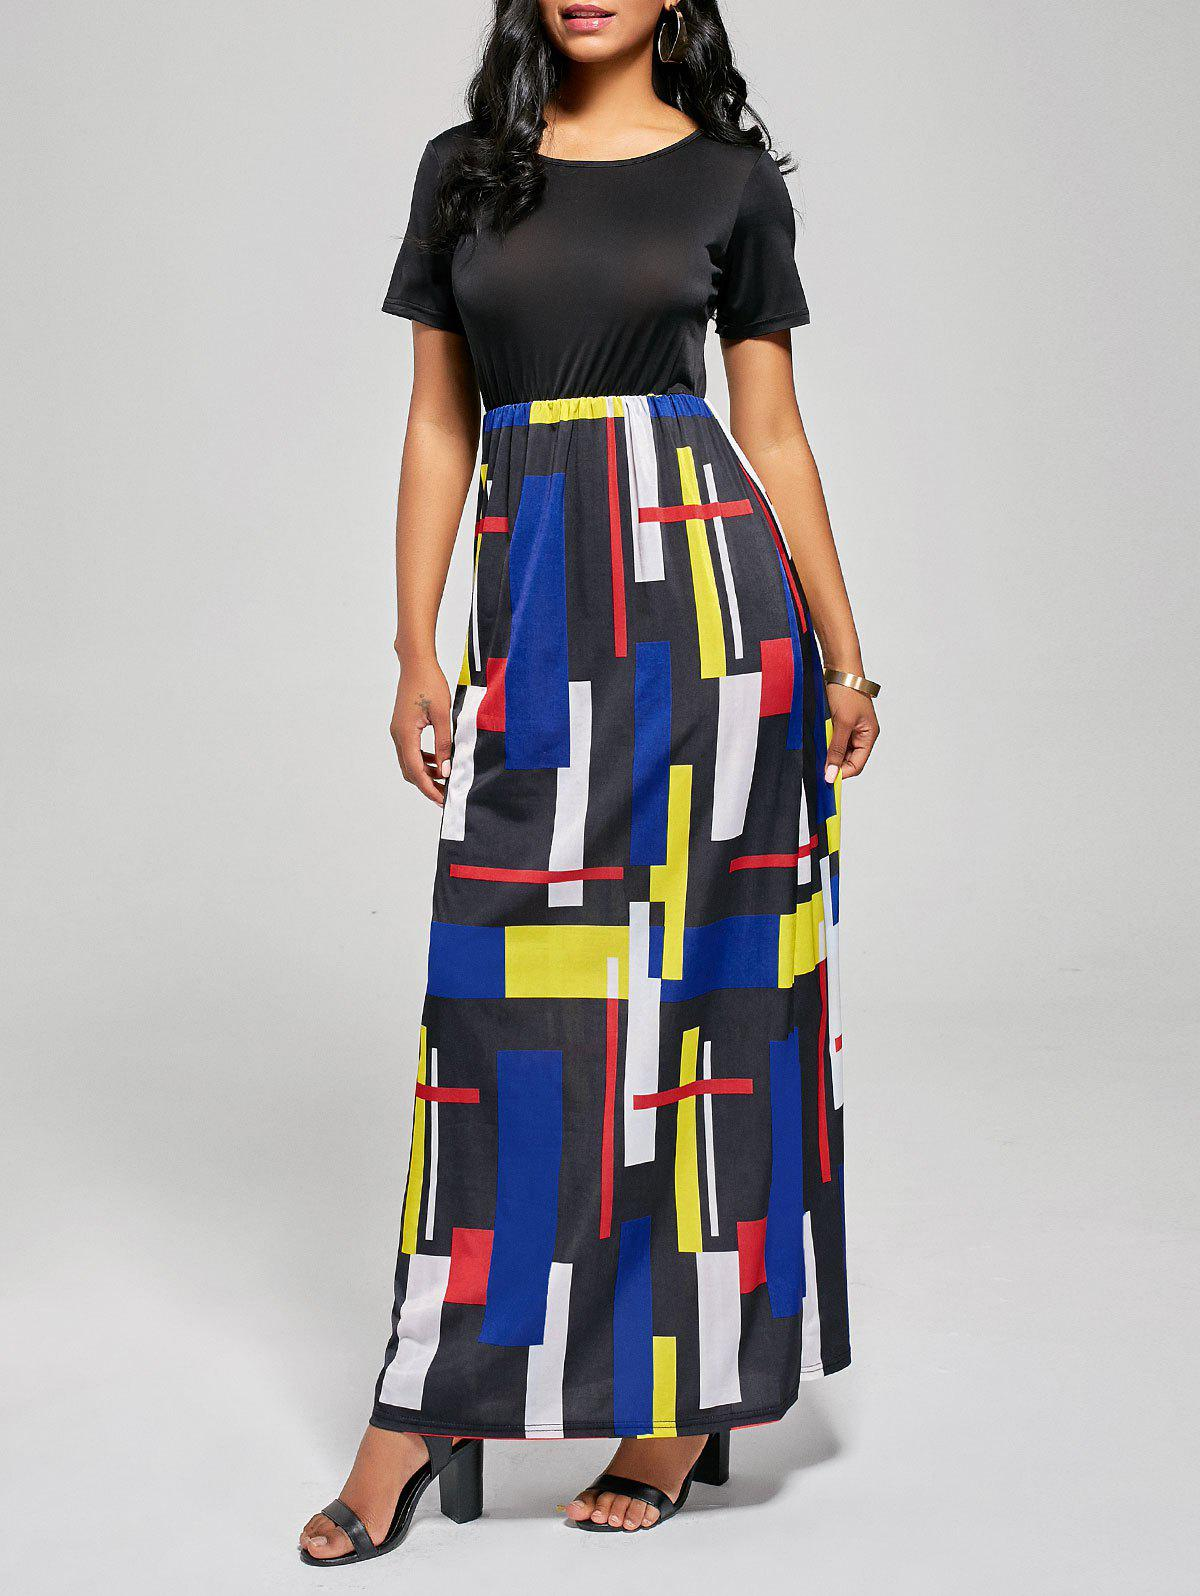 Geometric Print A Line Floor Length Dress - BLACK/RED L